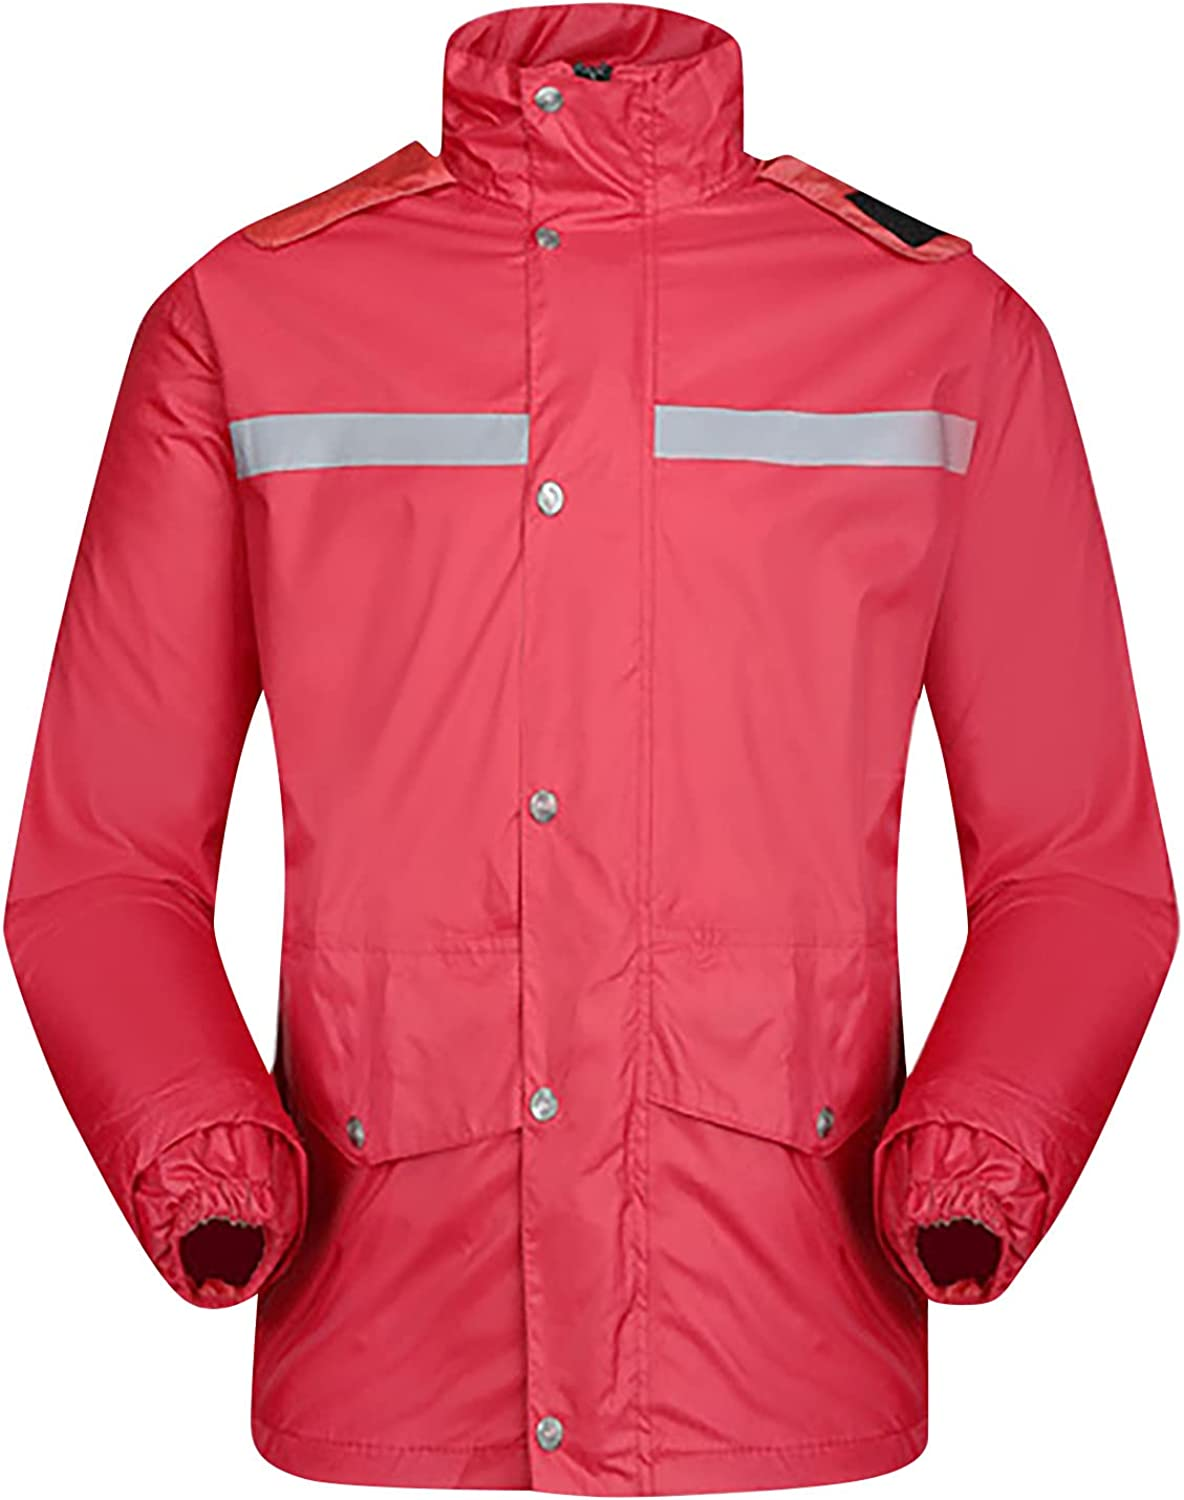 Rain Suits for Men Waterproof,with Reflective Strip Hooded Rain Suit for Mens Womens